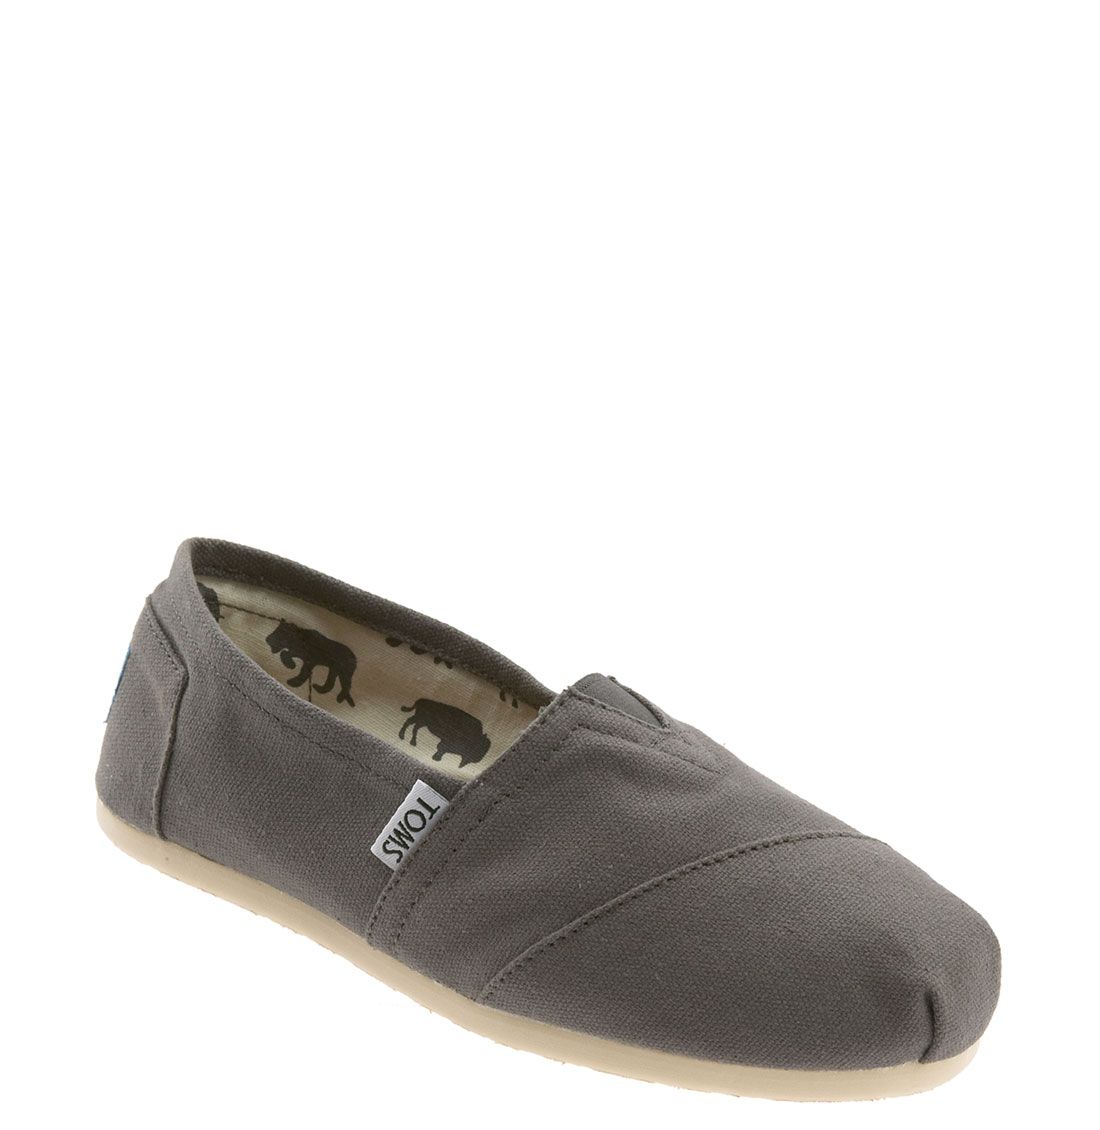 Toms Shoes Sold In Stores